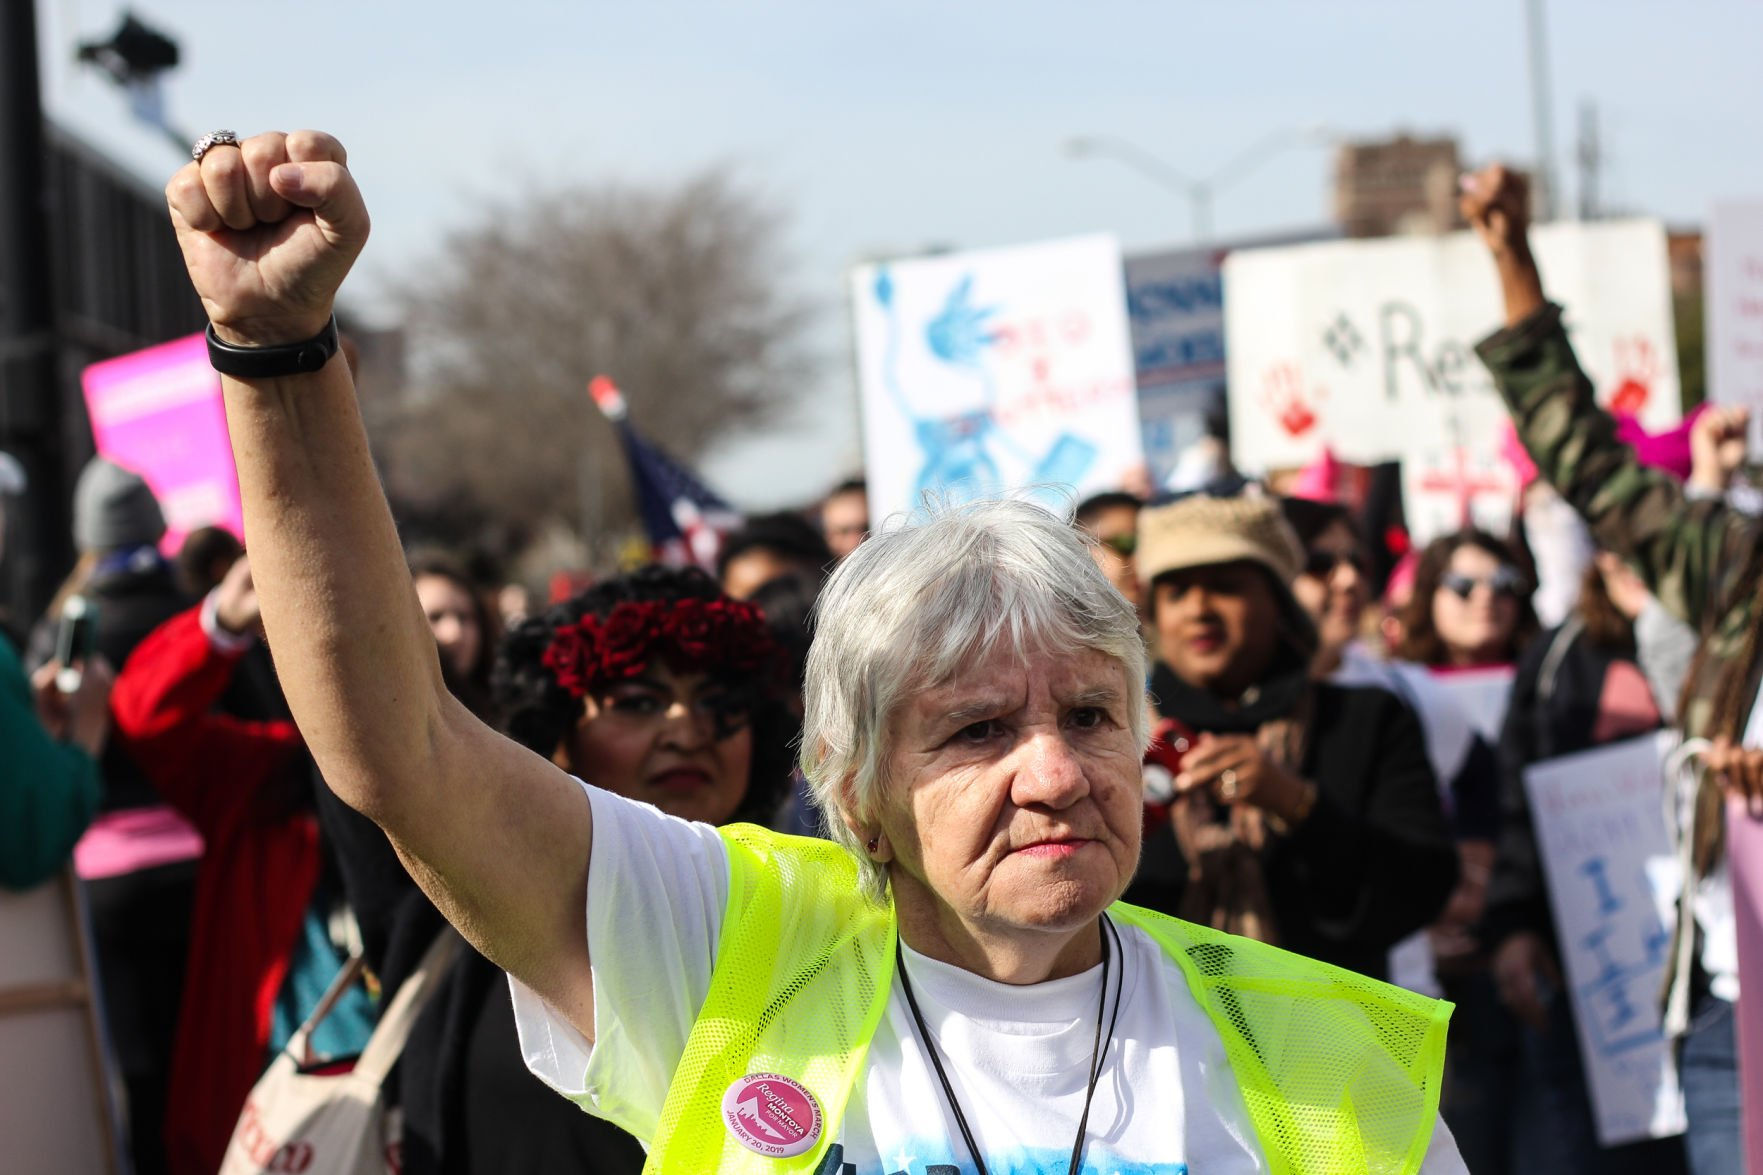 Third annual Dallas Women's March fights for gender, racial equality